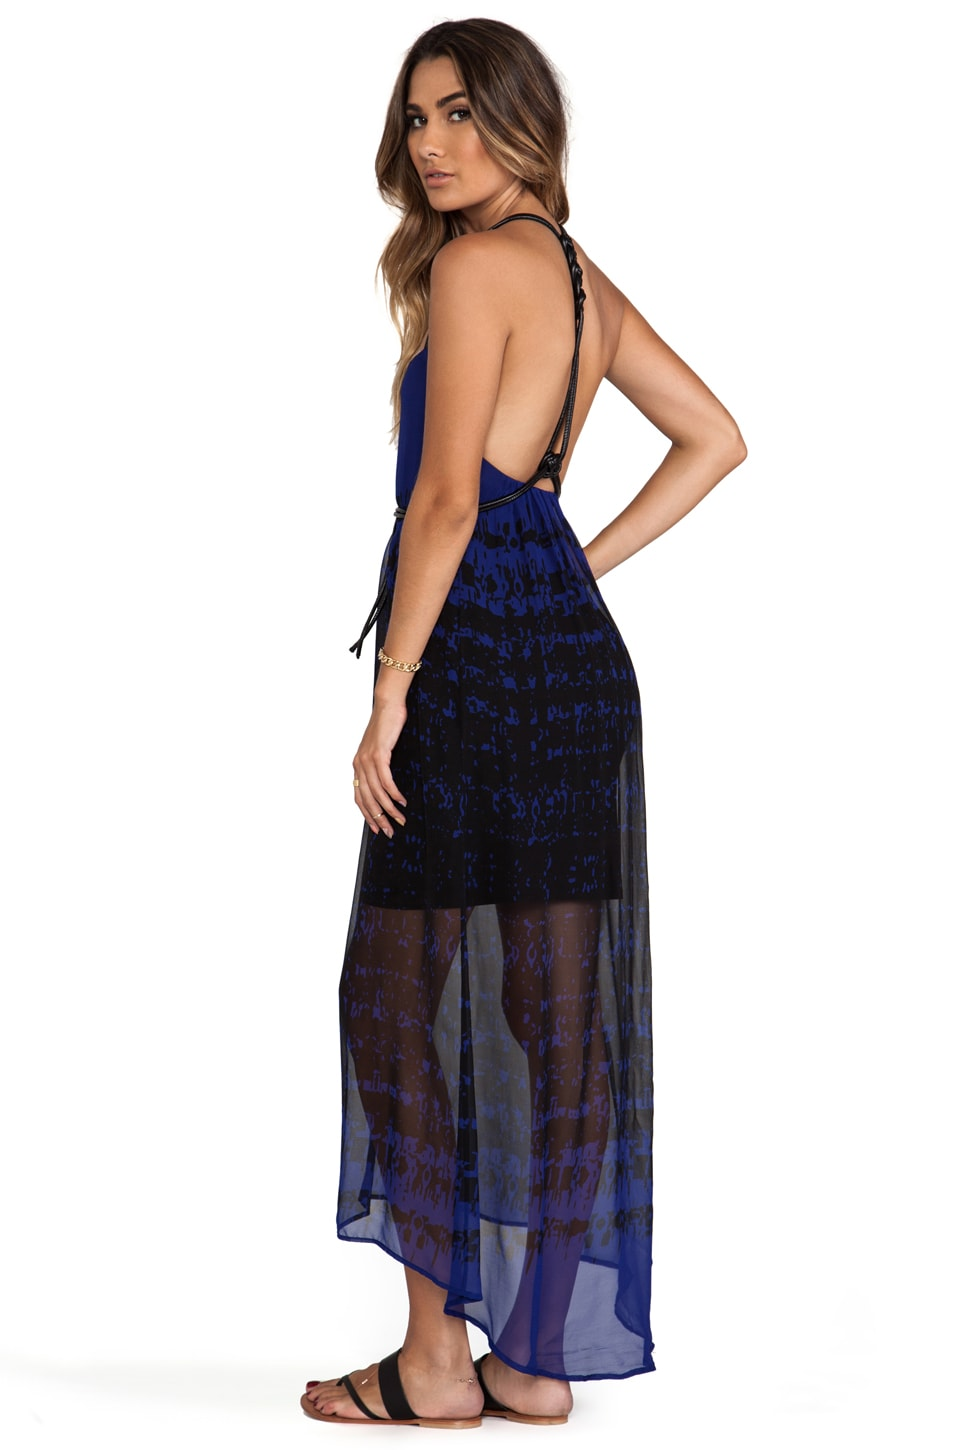 Twelfth Street By Cynthia Vincent Page Leather Knotted High-Low Dress in Cobalt